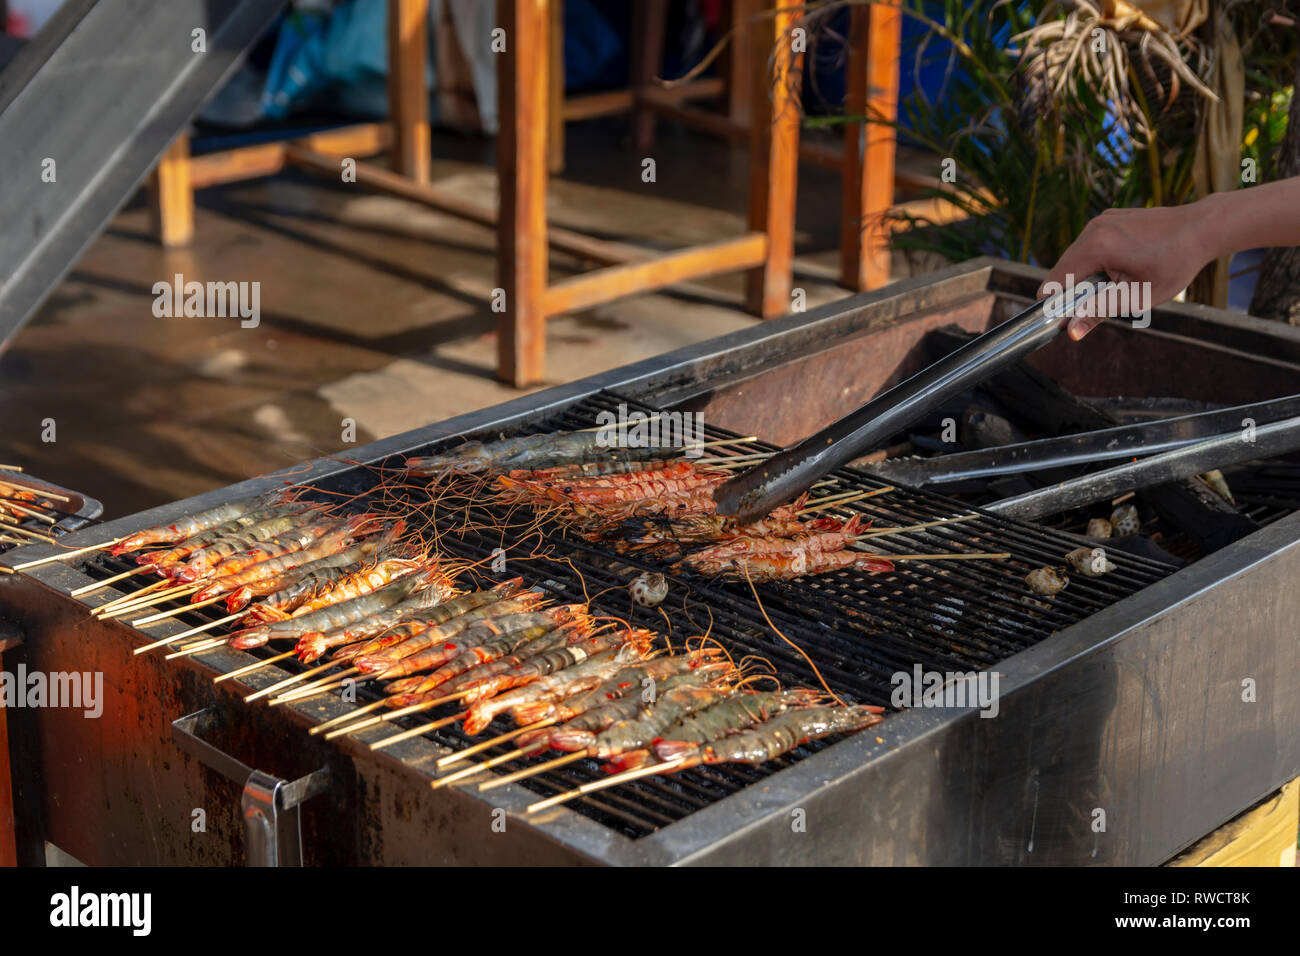 Hand holding a kitchen tong for turning prawns on a coal-fired grill, picture from Phu Quoc Island, Vietnam. - Stock Image